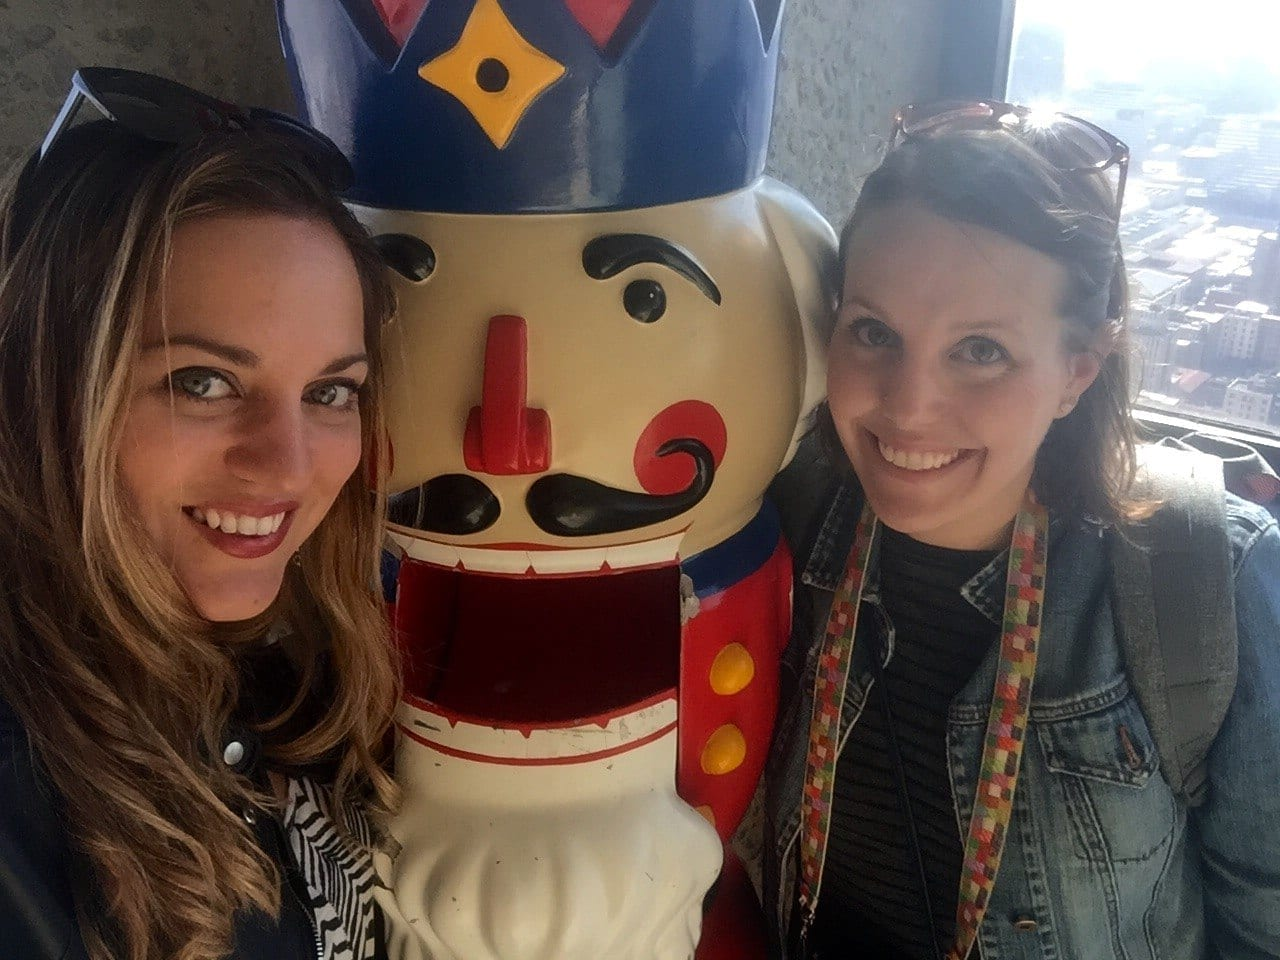 Kate and Beth with the Nutcracker in Johannesburg